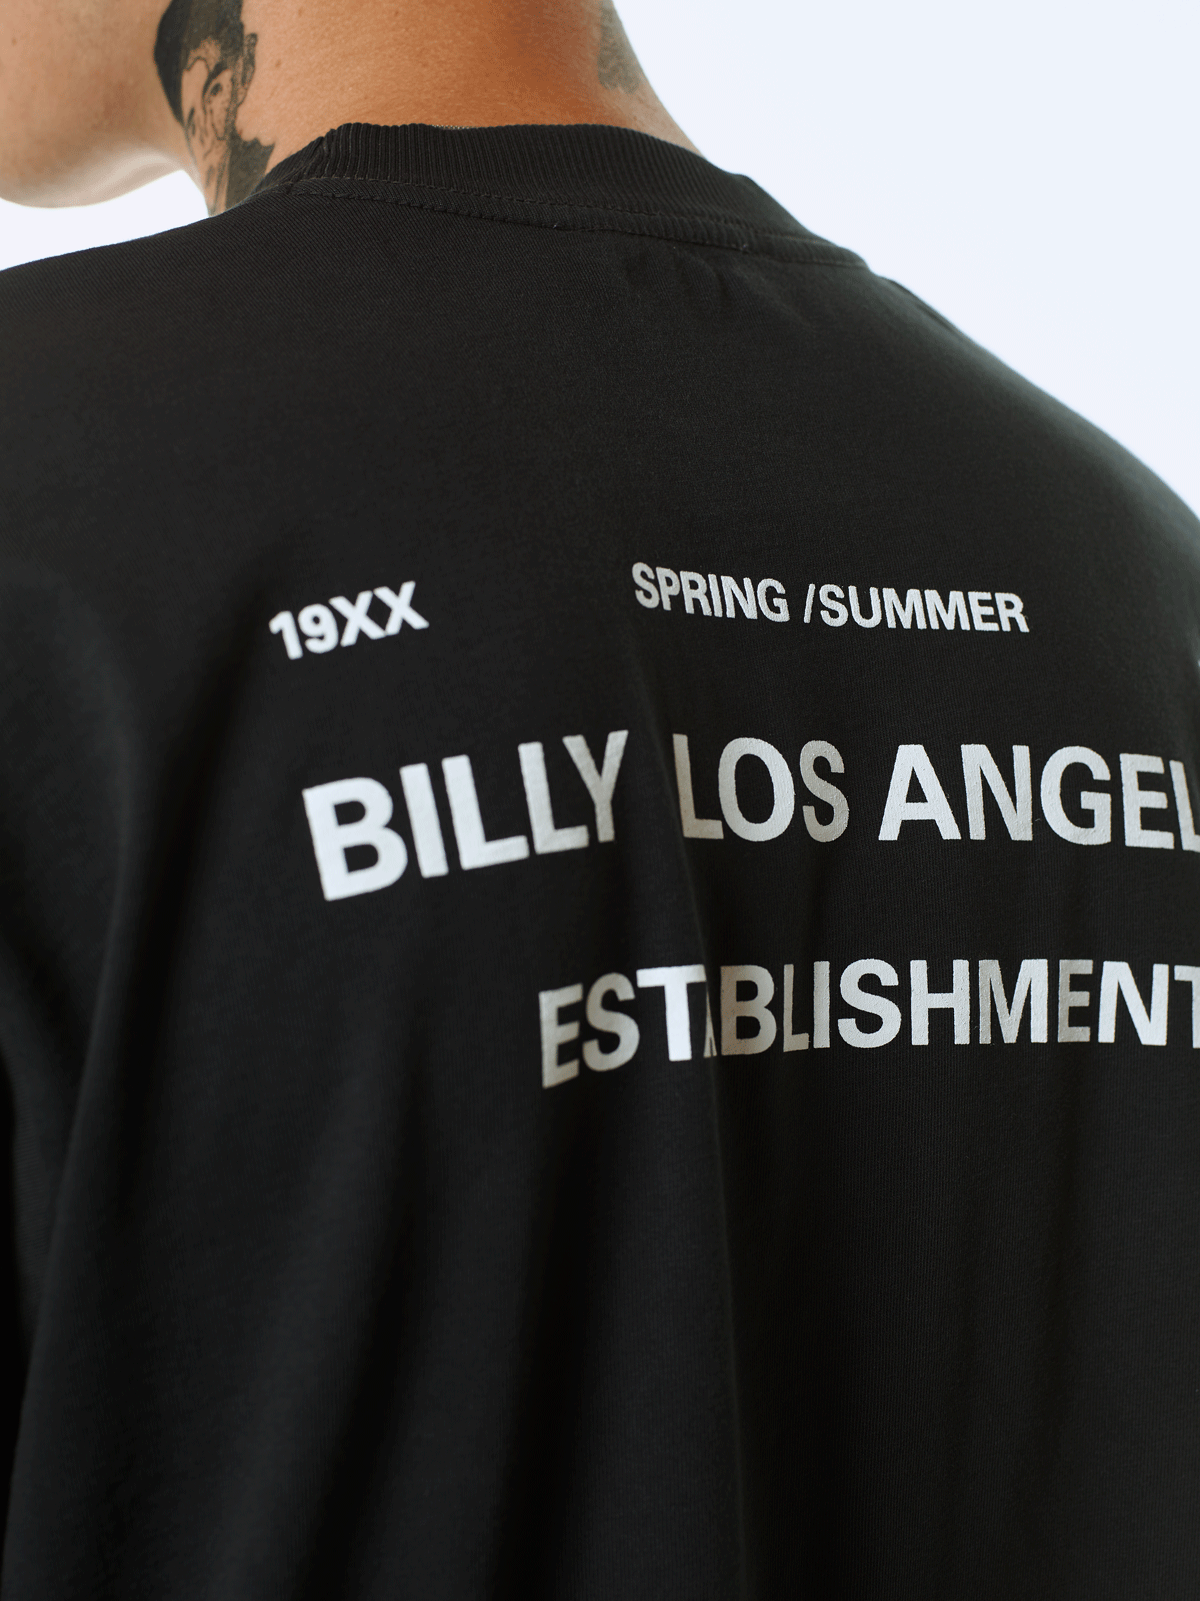 Billy Los Angeles